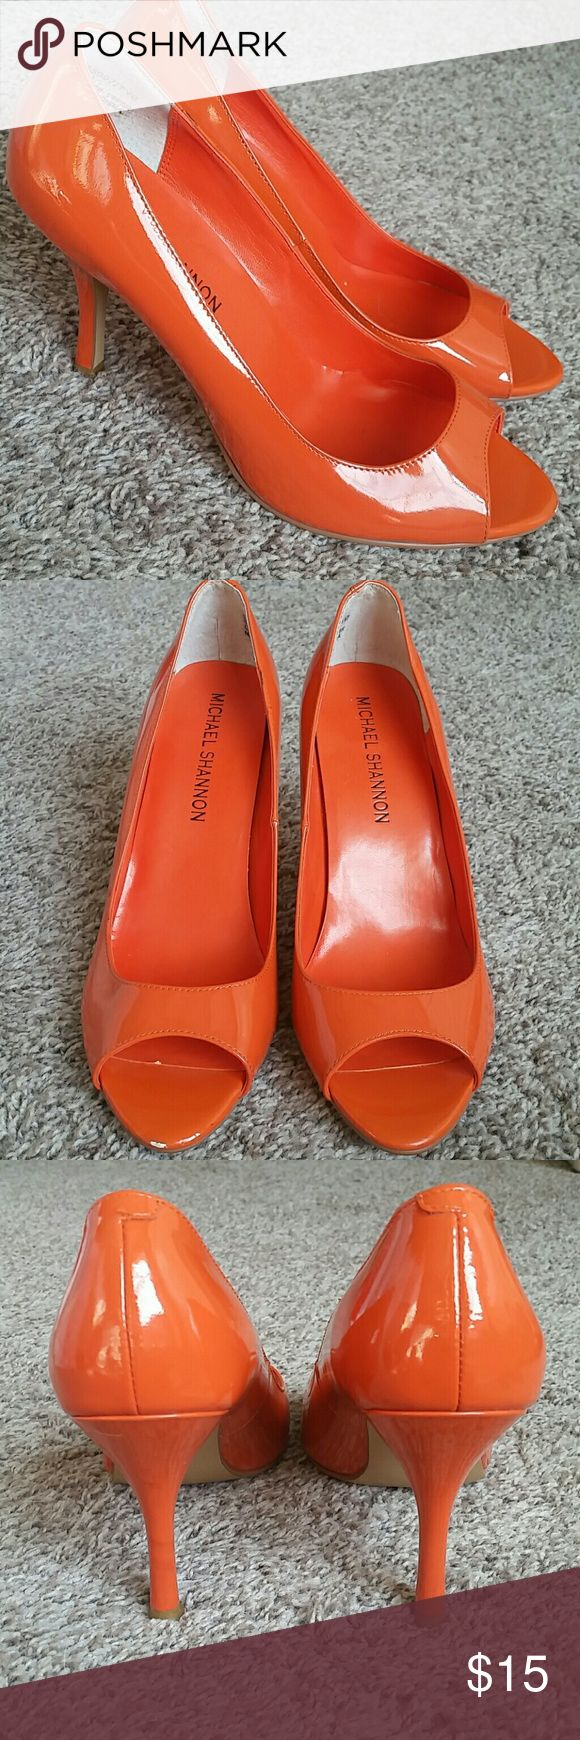 "Michael Shannon Orange Pumps Perfect for Spring and Summer! Michael Shannon Orange peep toe pumps.  Minimal scuffing on shoes. In great condition. Women's size 7.5 Heel height: 3.75"" Michael Shannon Shoes Heels"